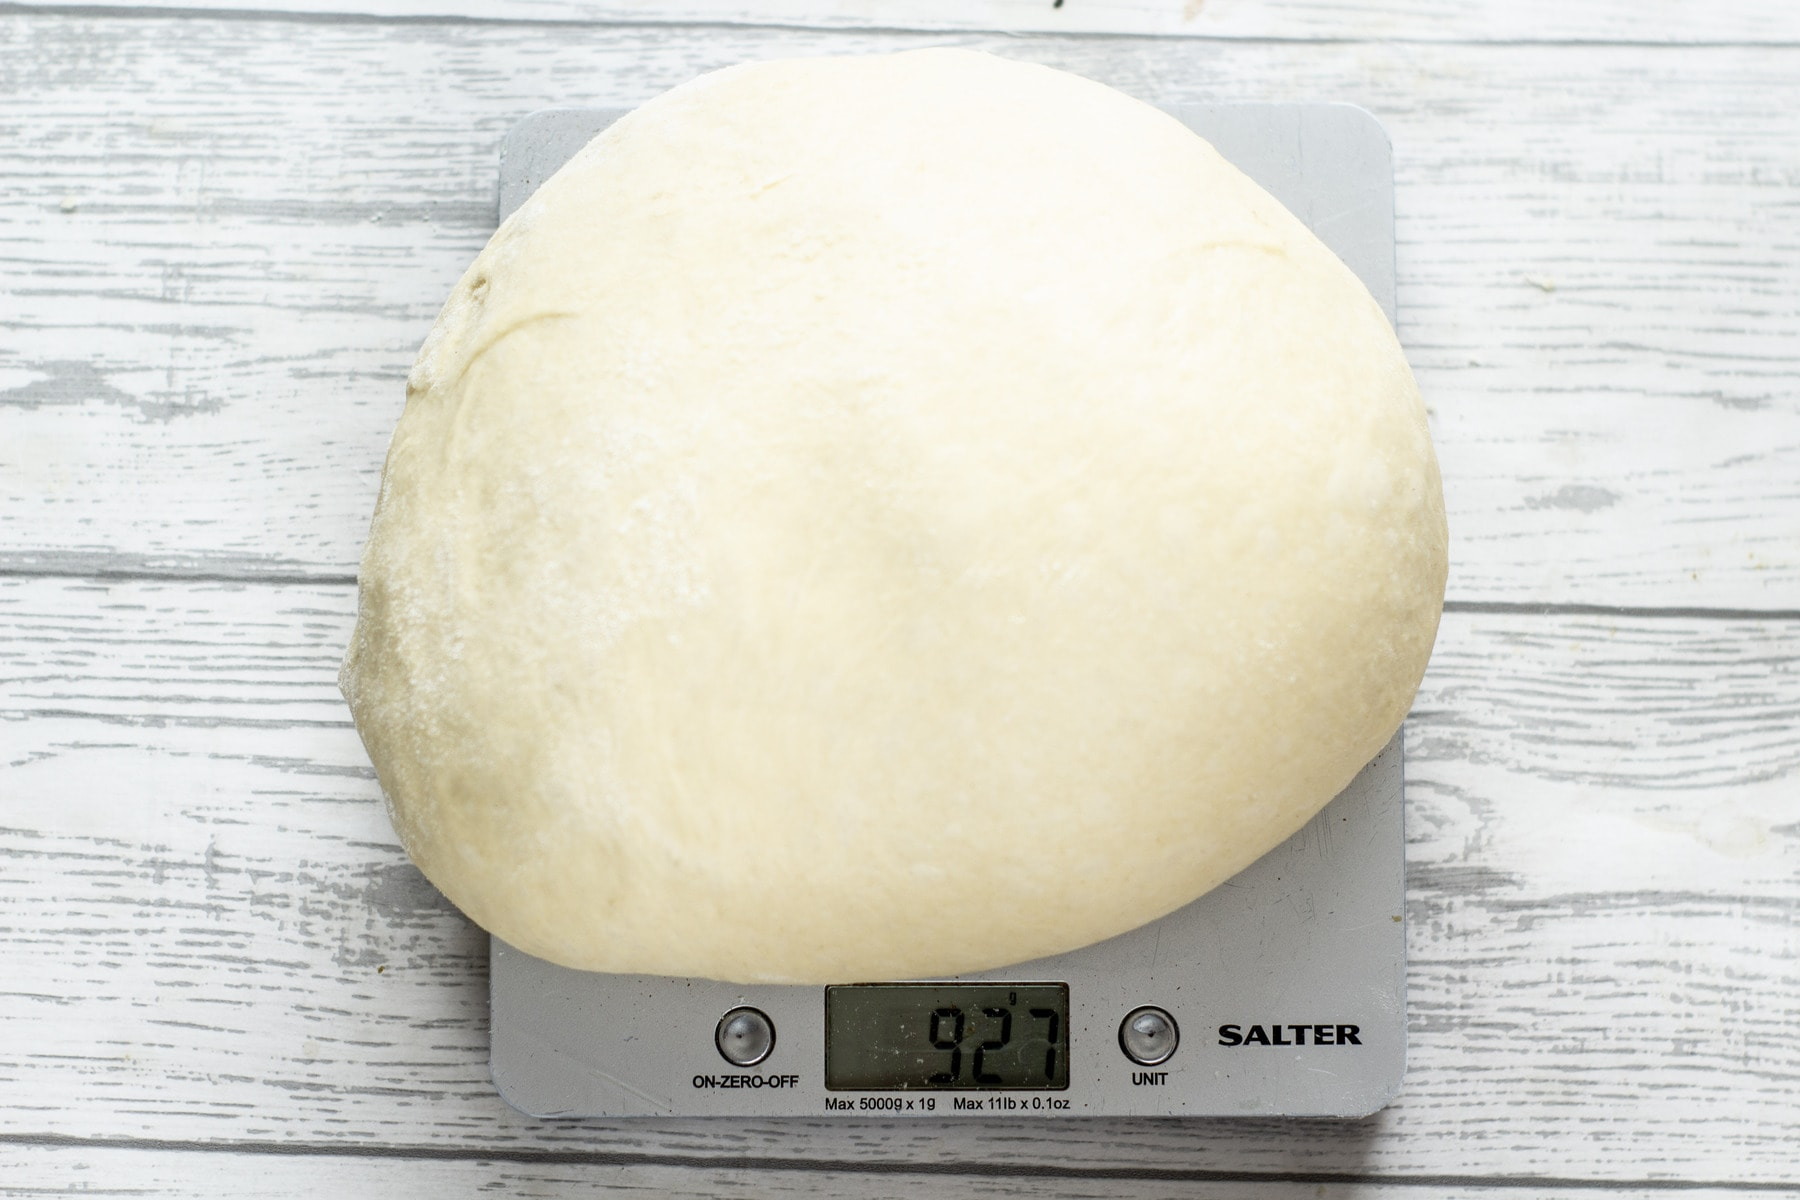 best bread rolls dough being weighed on digital scales